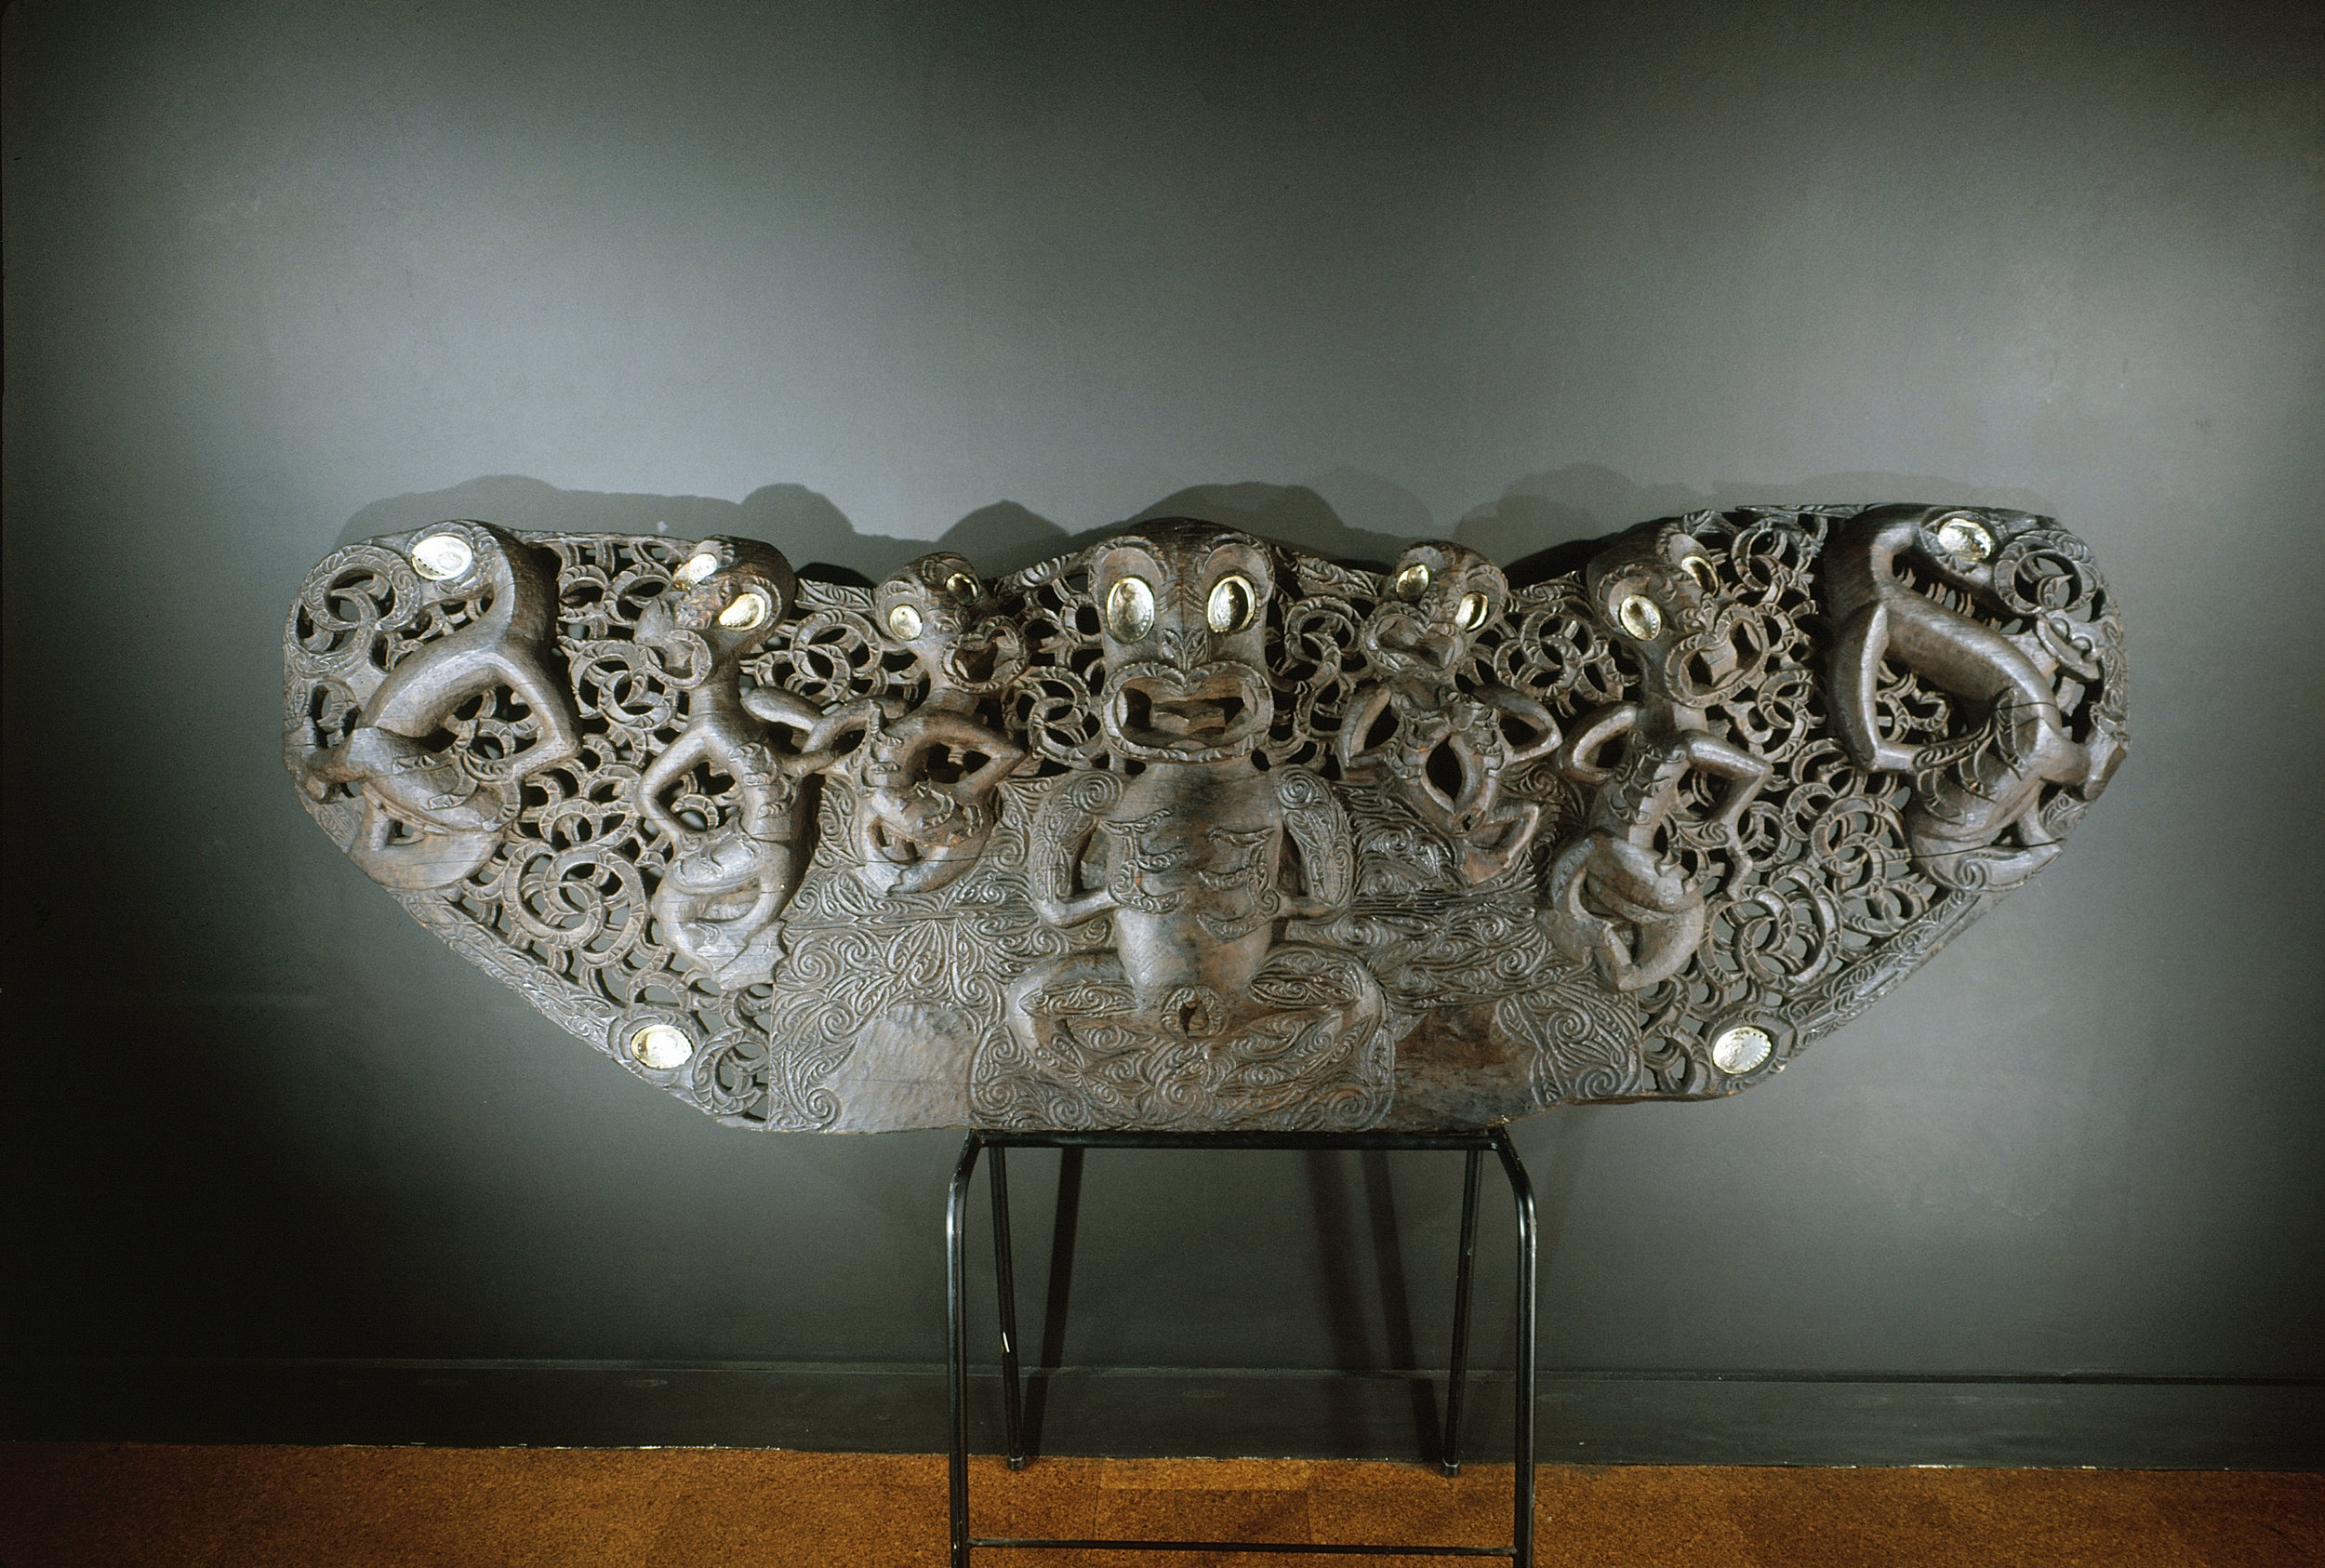 A fine late example of a house lintel carved with stone tools in the Ngati Tamatera style. The carving represents the separation of the primordial couple Rangi, the Sky Father, and Papa, the Earth Mother. Hauraki.   Circa 1850.   Inv. #: 55404969 © Werner Forman Archive/ Auckland Institute and Museum, Auckland